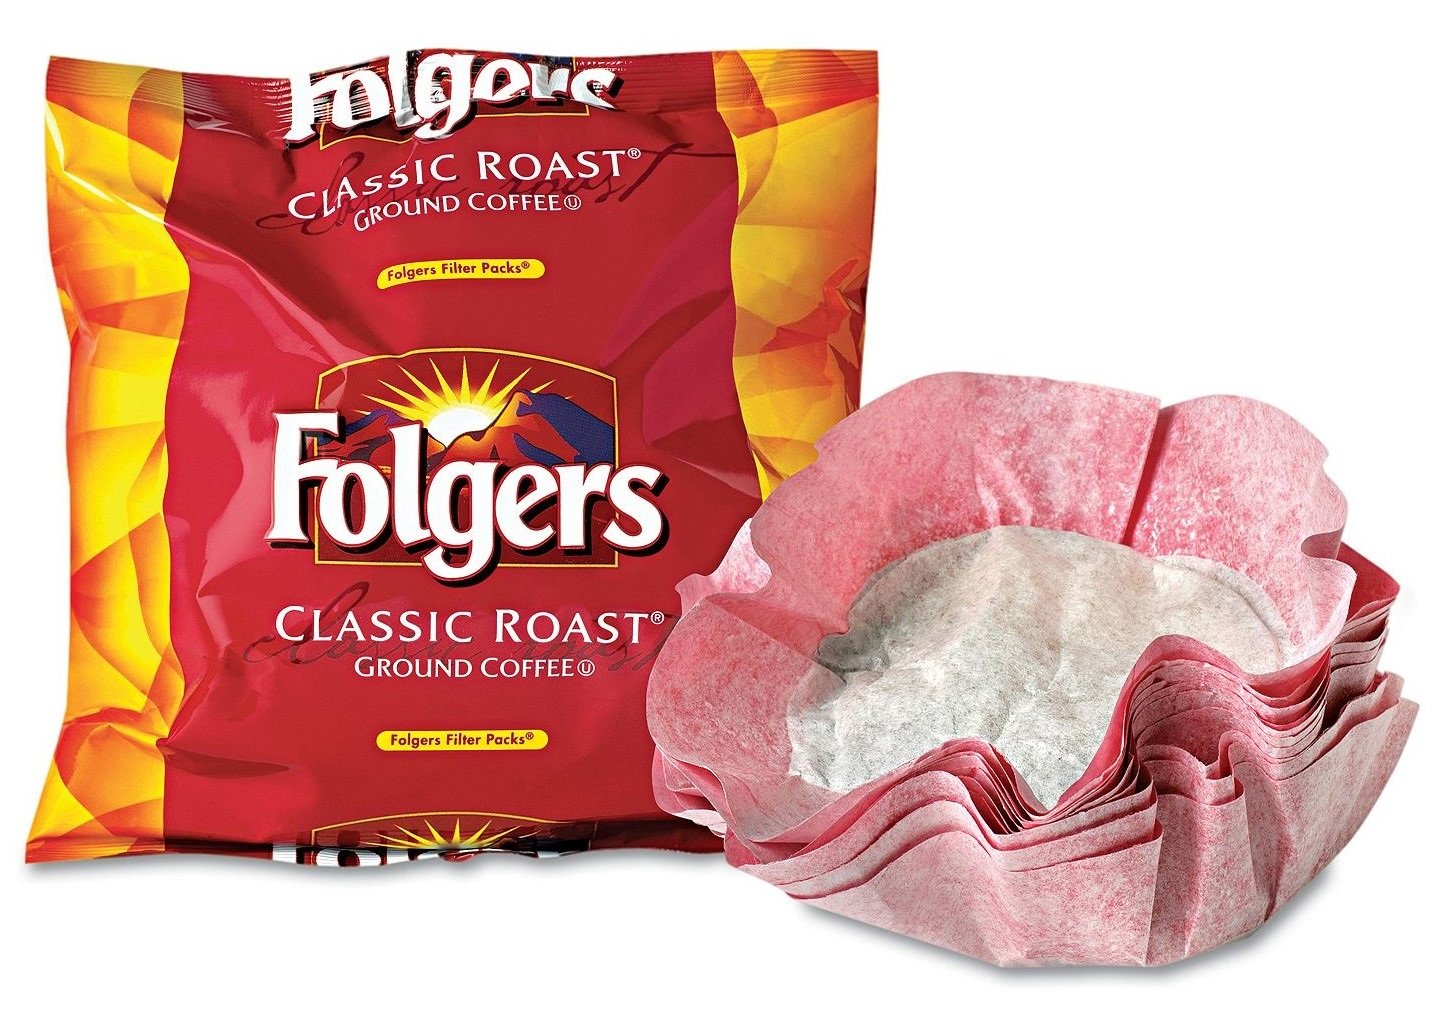 Folgers Classic Roast Ground Coffee, Filter Packs, (0.9 oz., 40 ct.) (pack of 6)